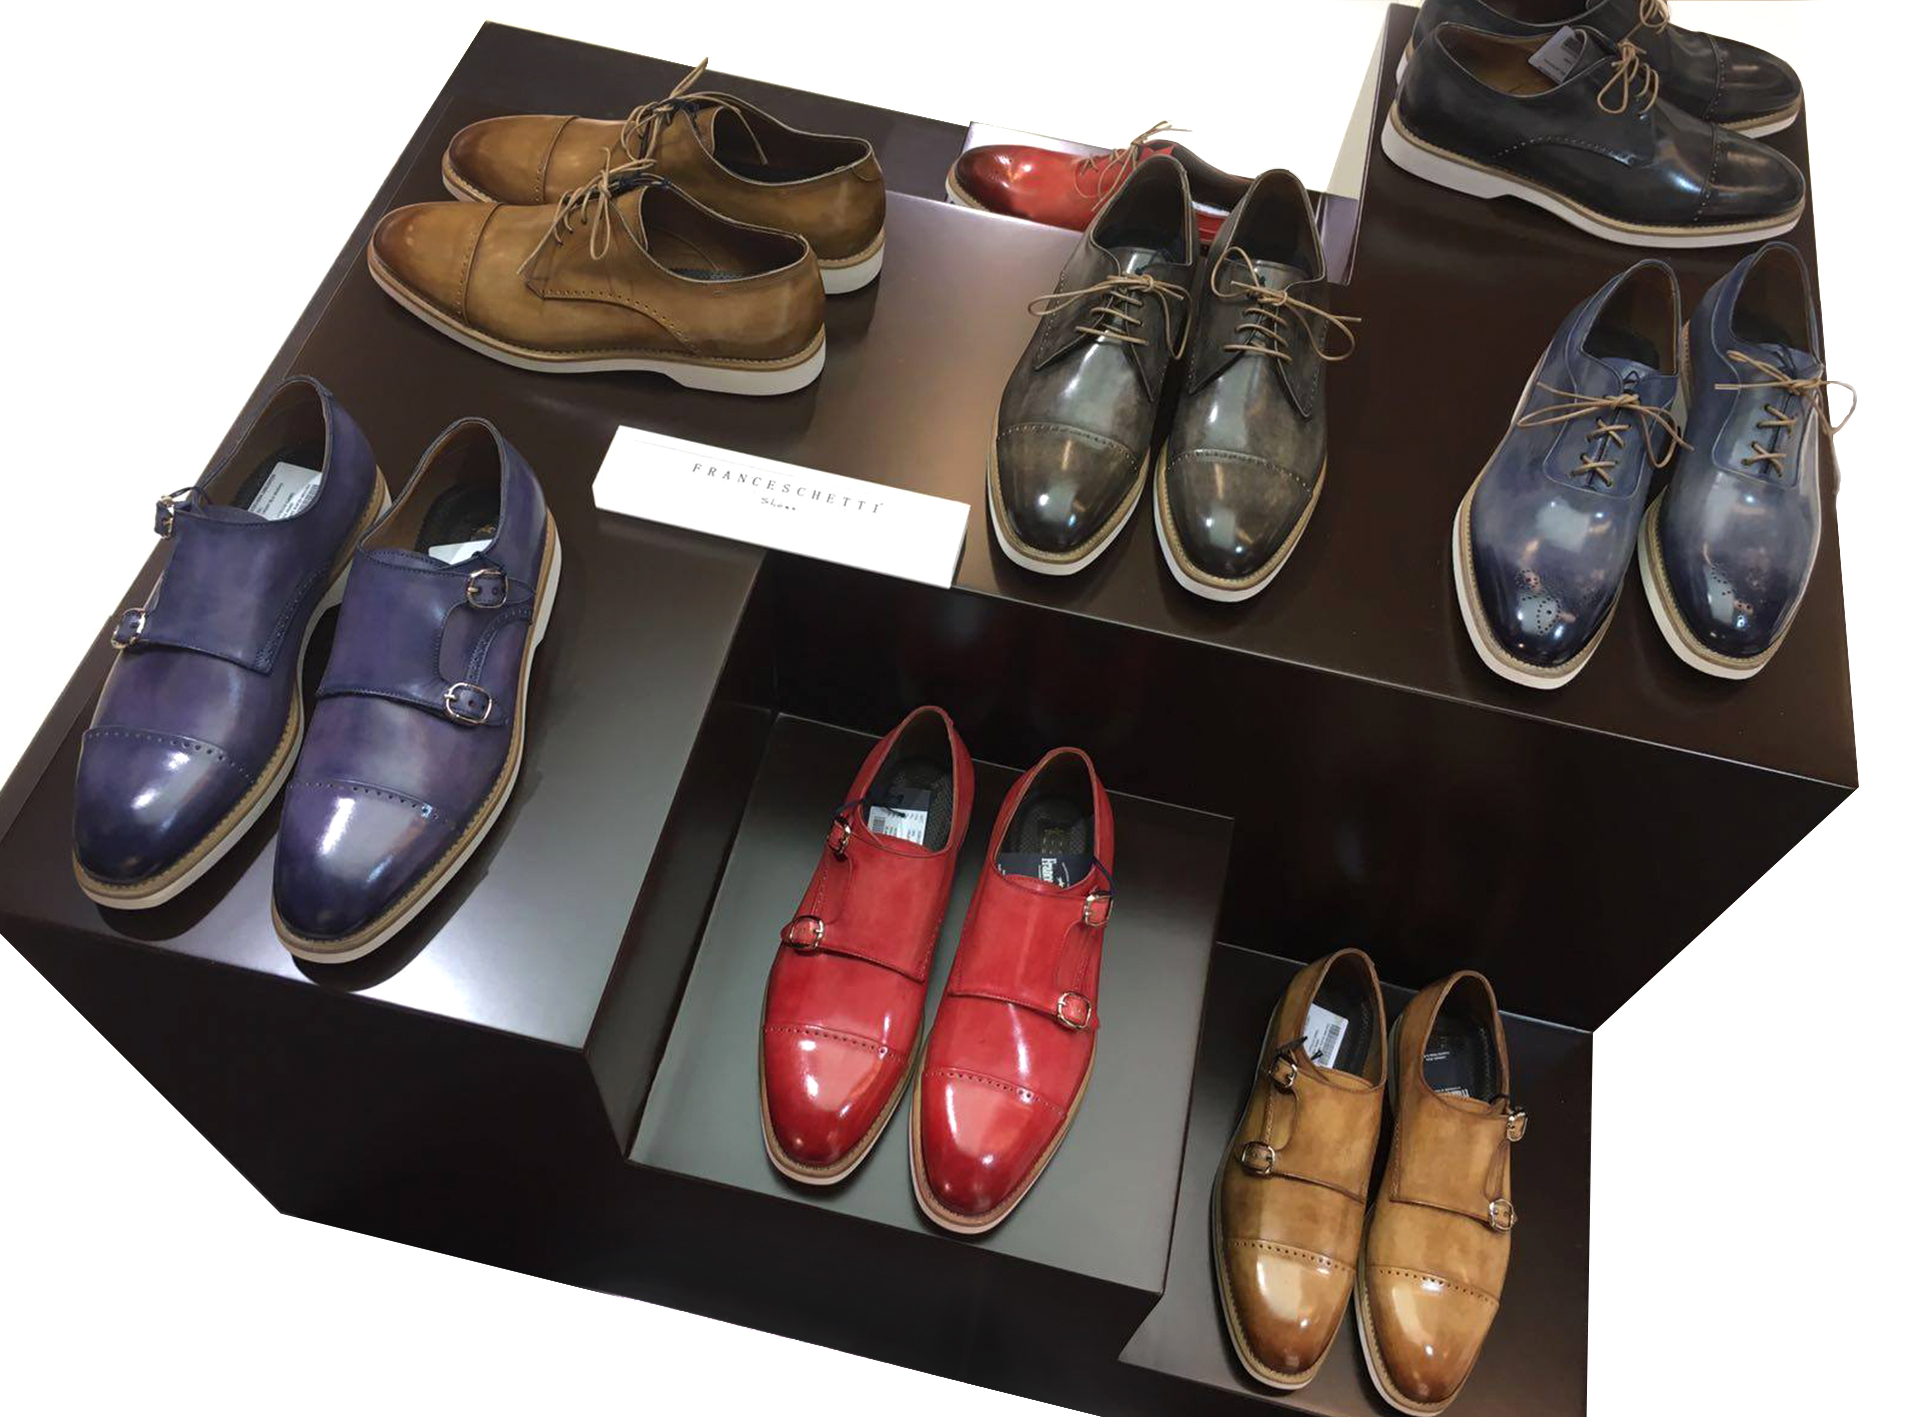 Montegranaro shoes